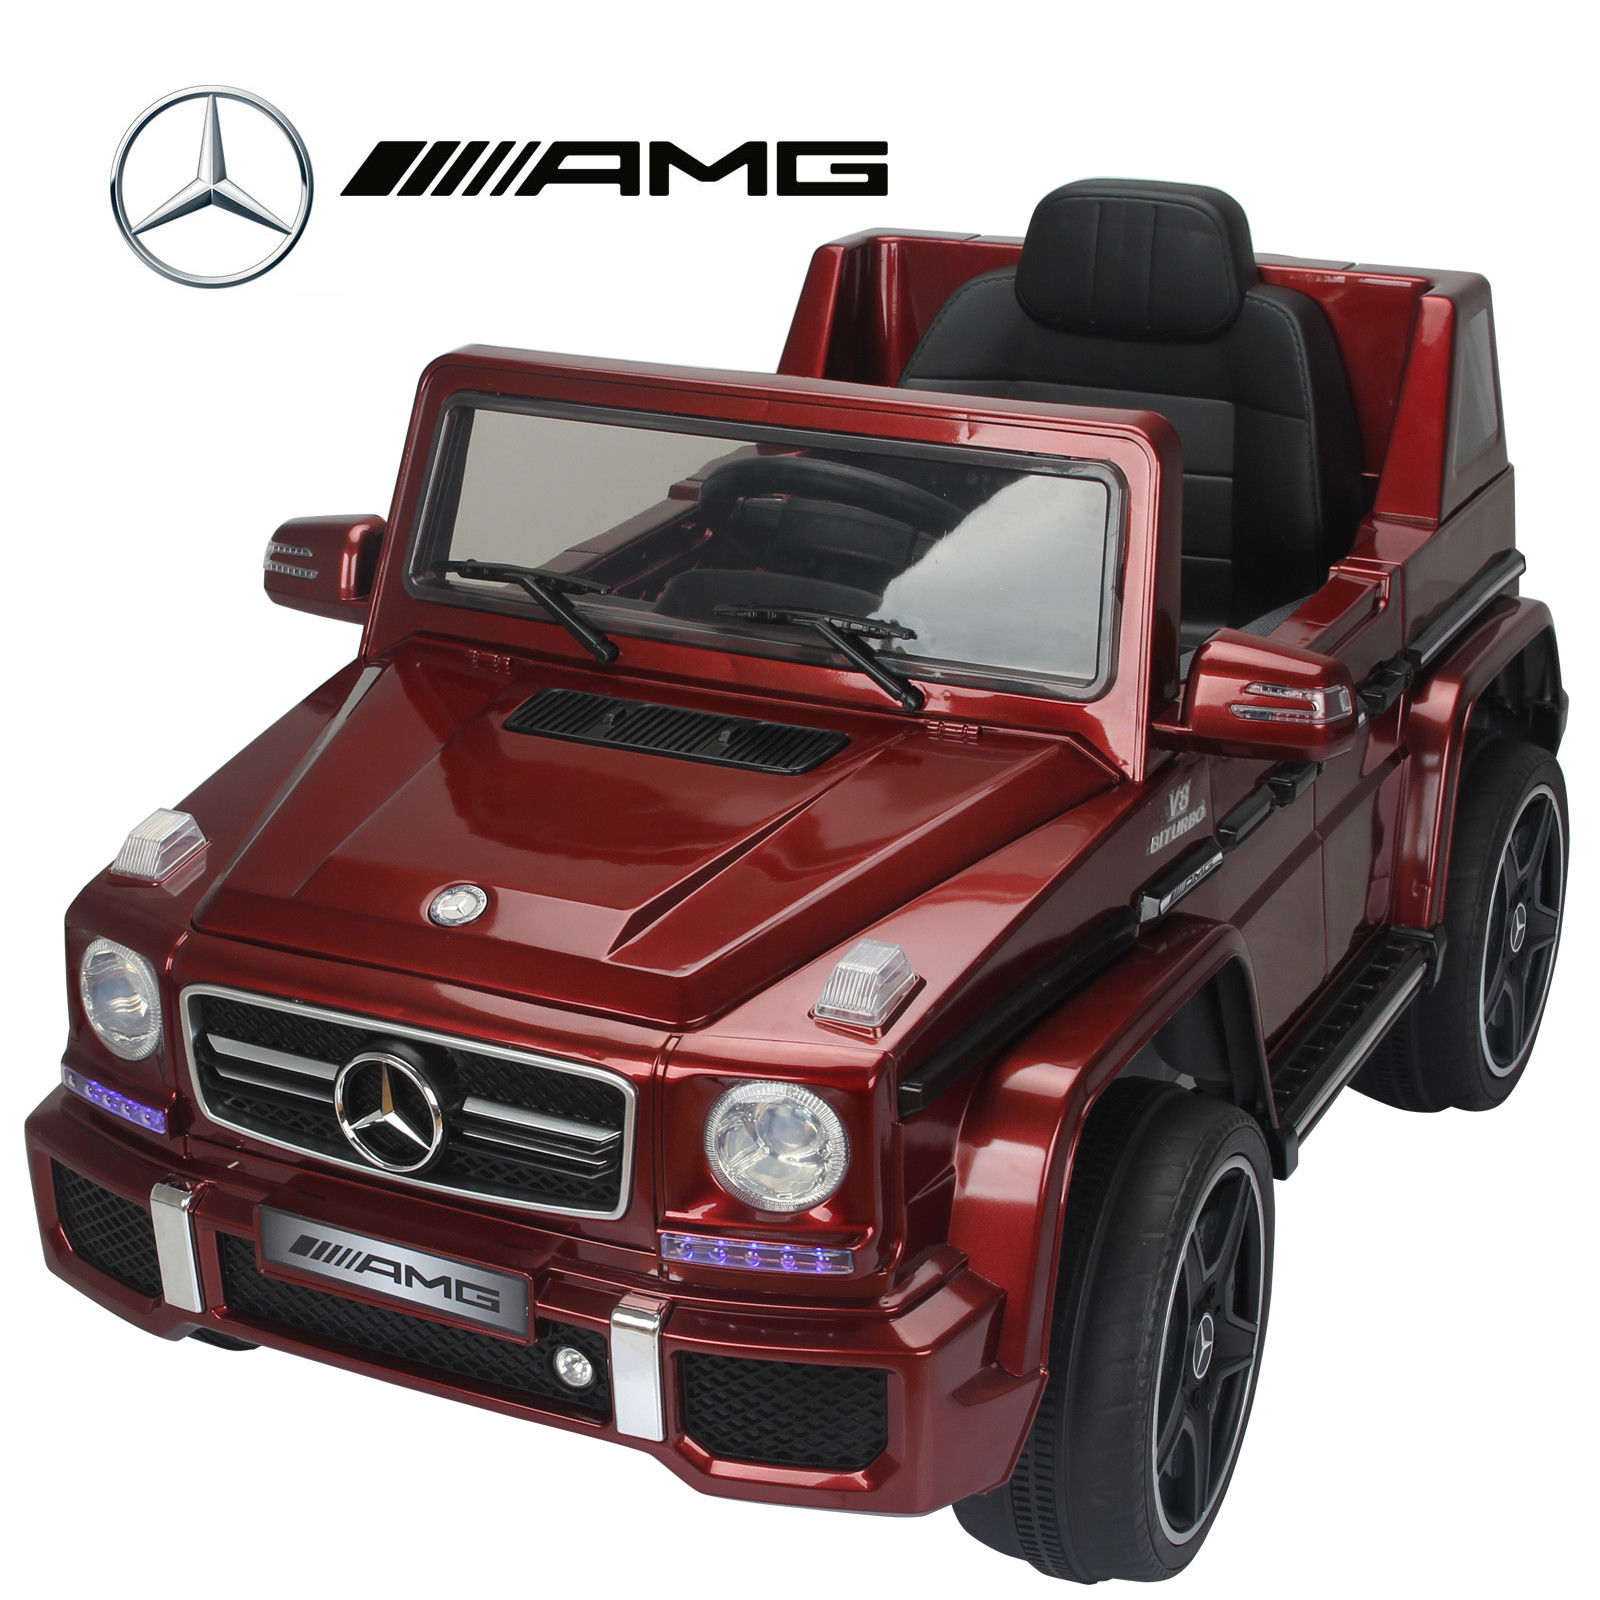 Mercedes Benz G63 Used: MERCEDES BENZ G63 AMG 12V KIDS RIDE ON JEEP REMOTE CONTROL